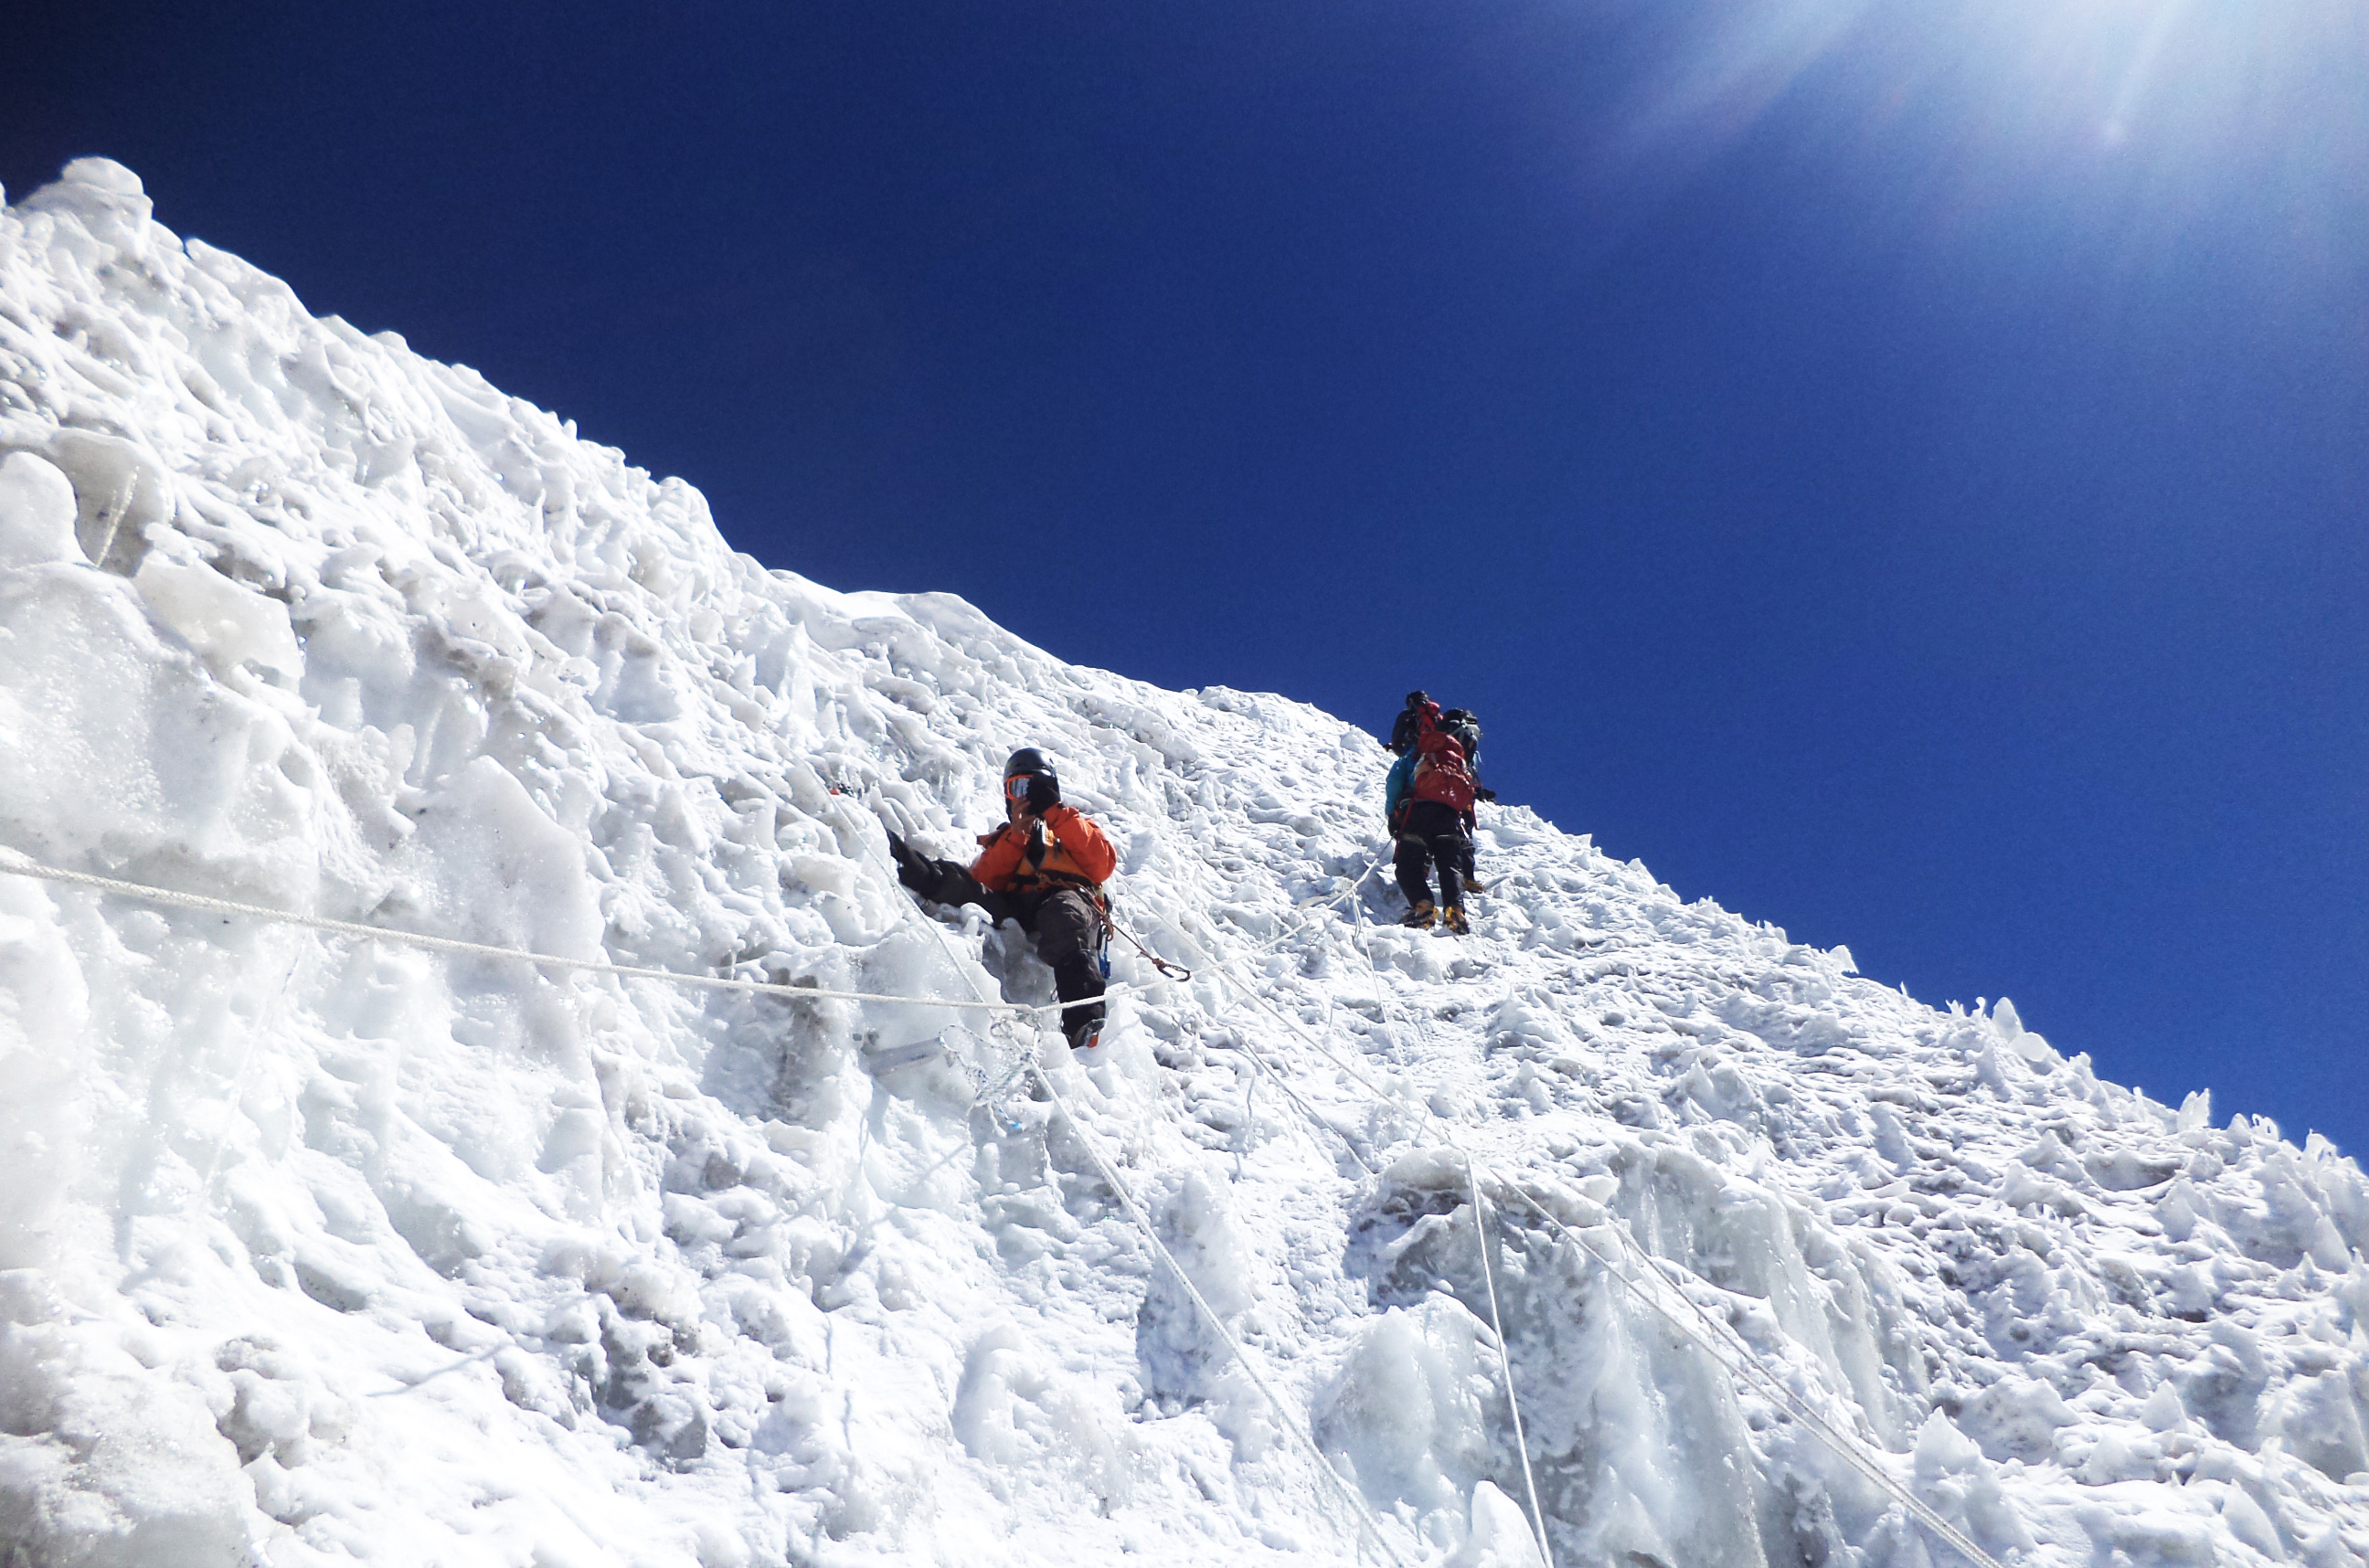 Peak Climbing and Expedition